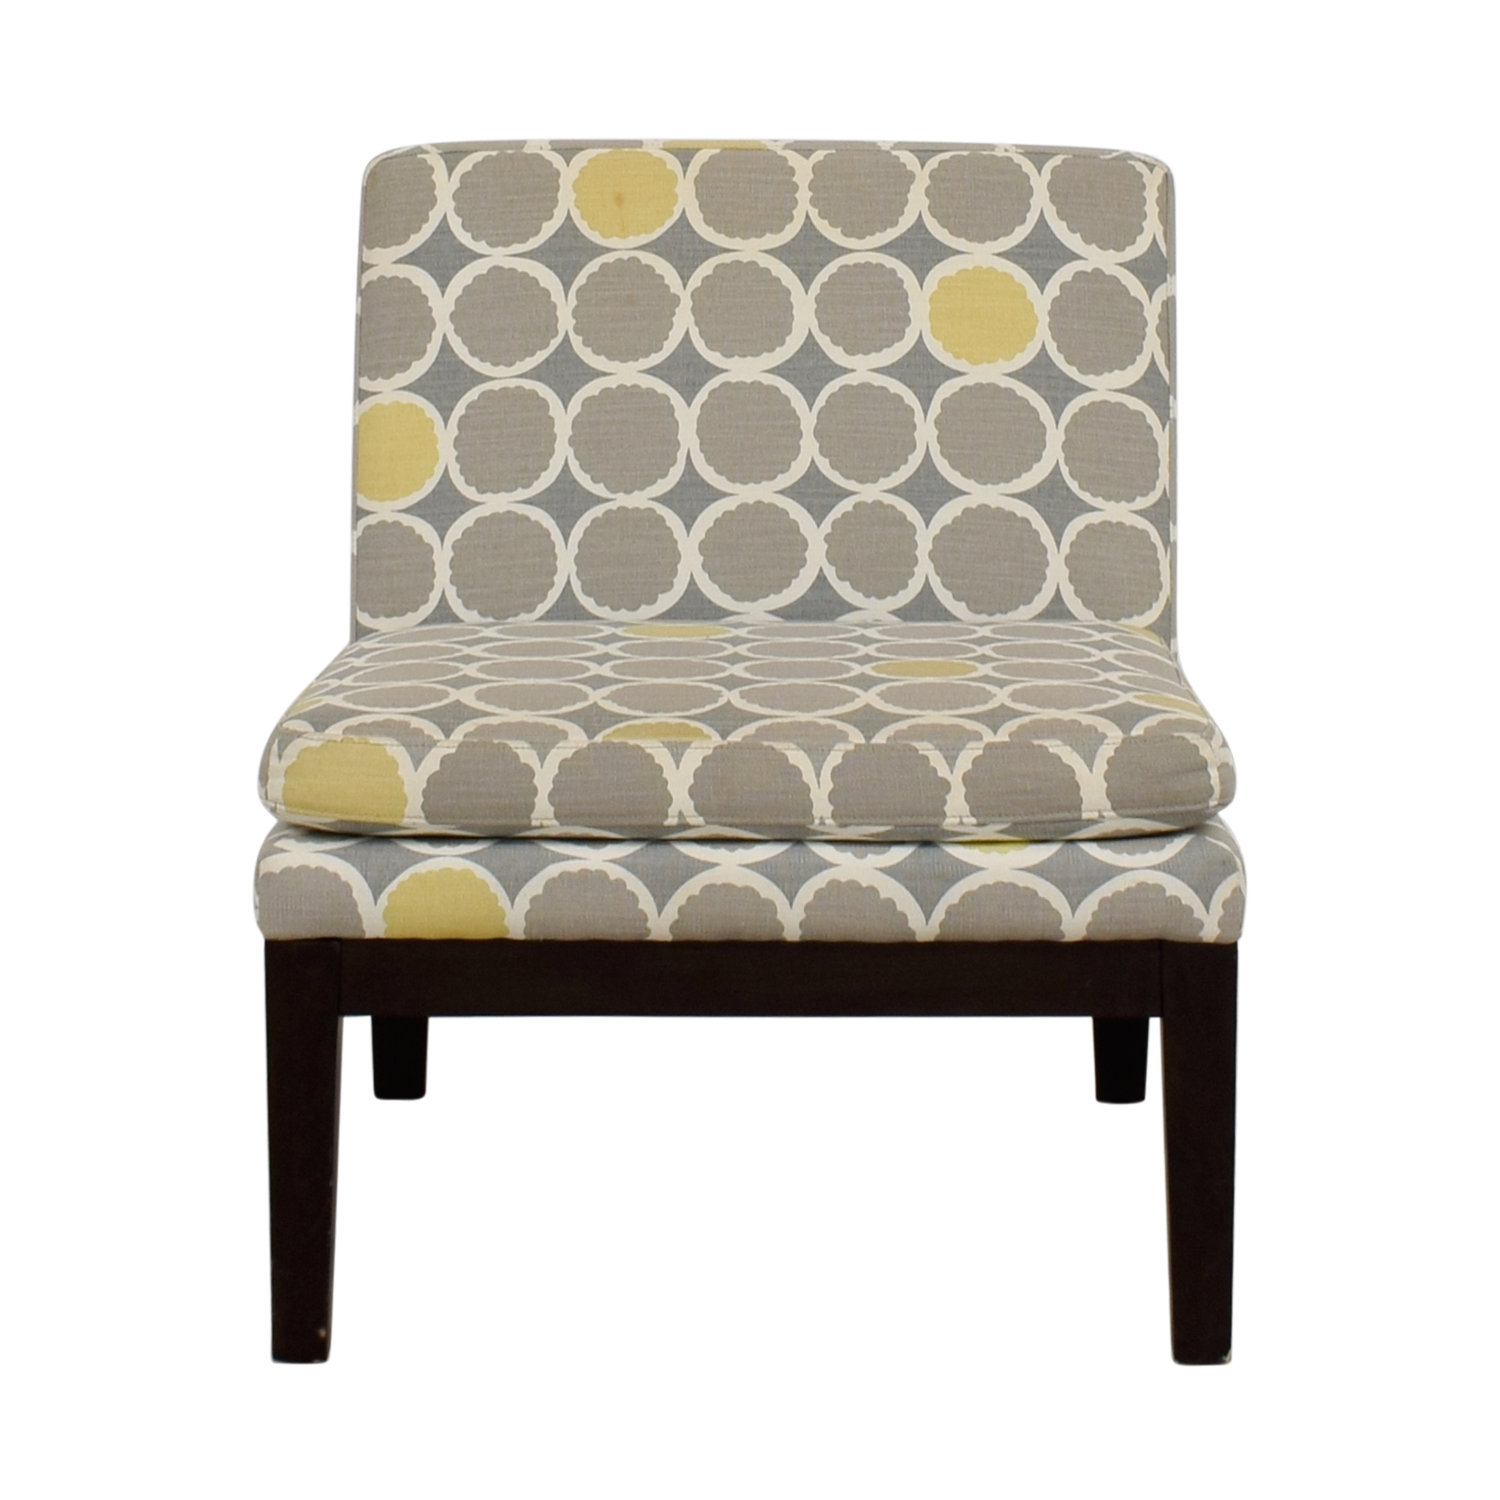 Grey And Yellow Chair 72 Off West Elm West Elm Grey Yellow And White Accent Chair Chairs